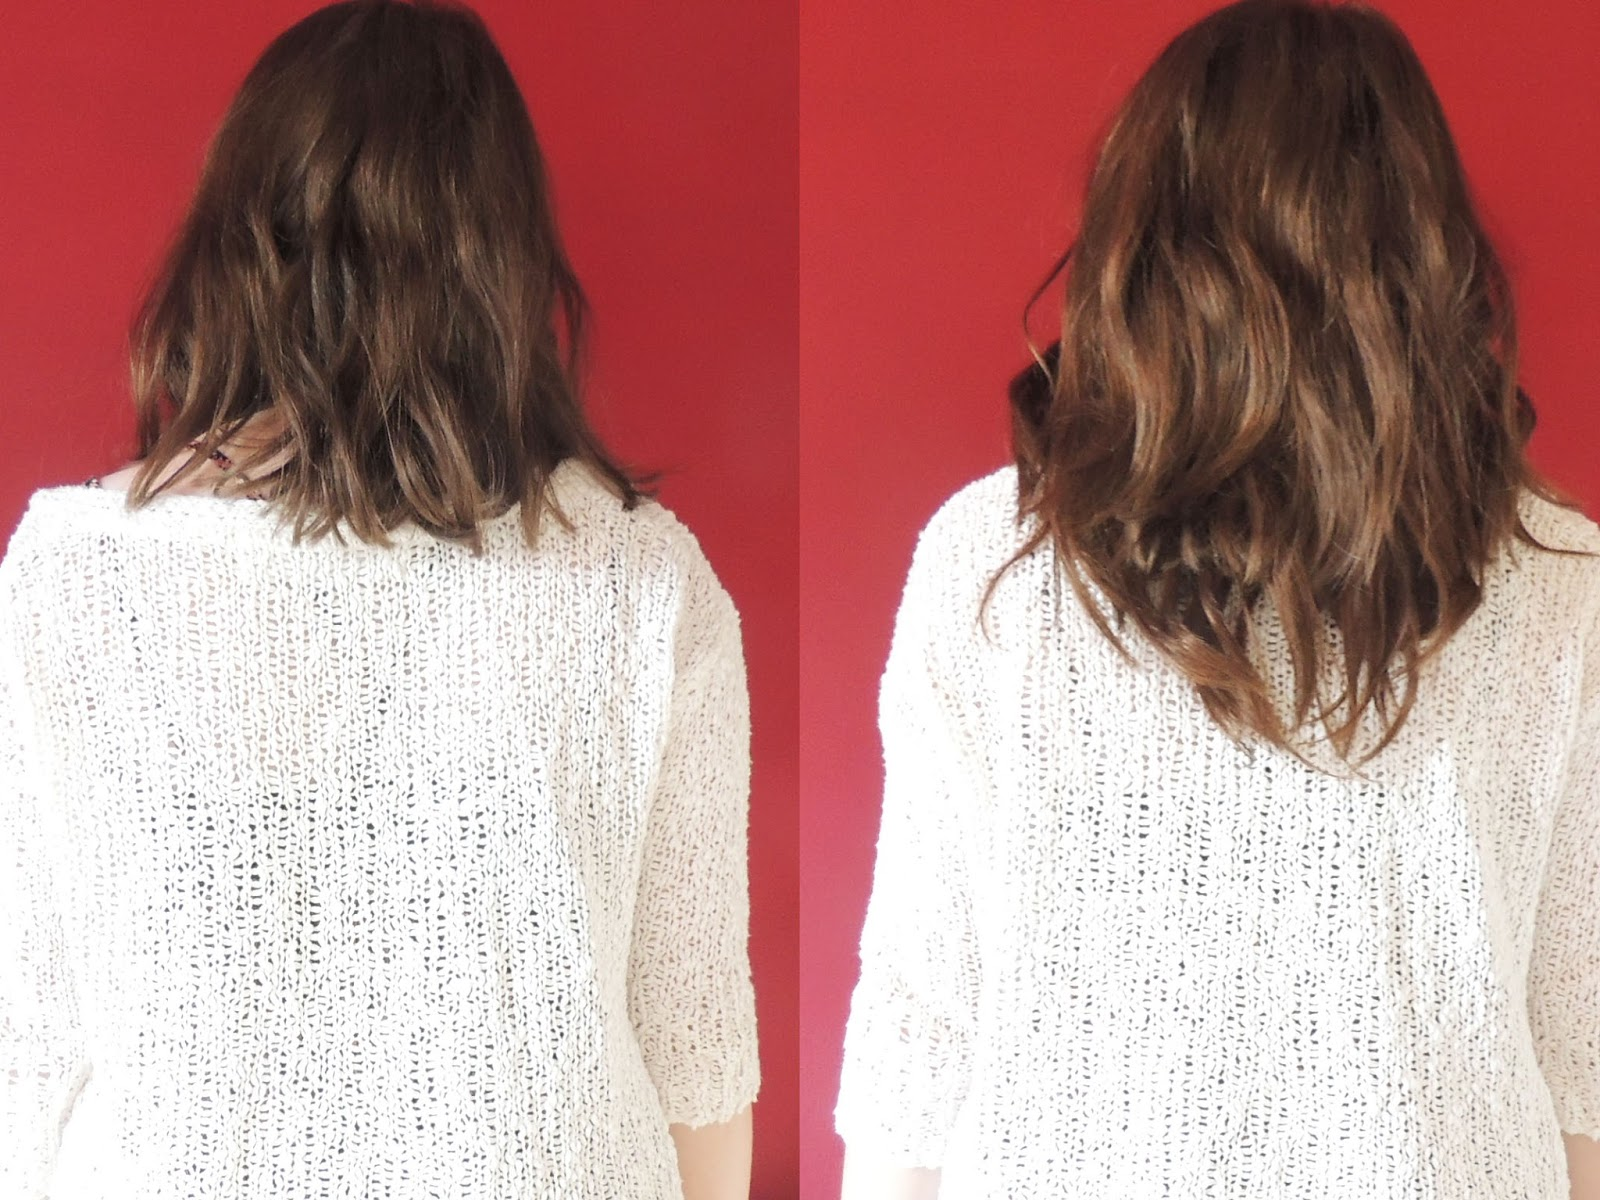 Review Dirty Looks Hair Extensions Emiloue